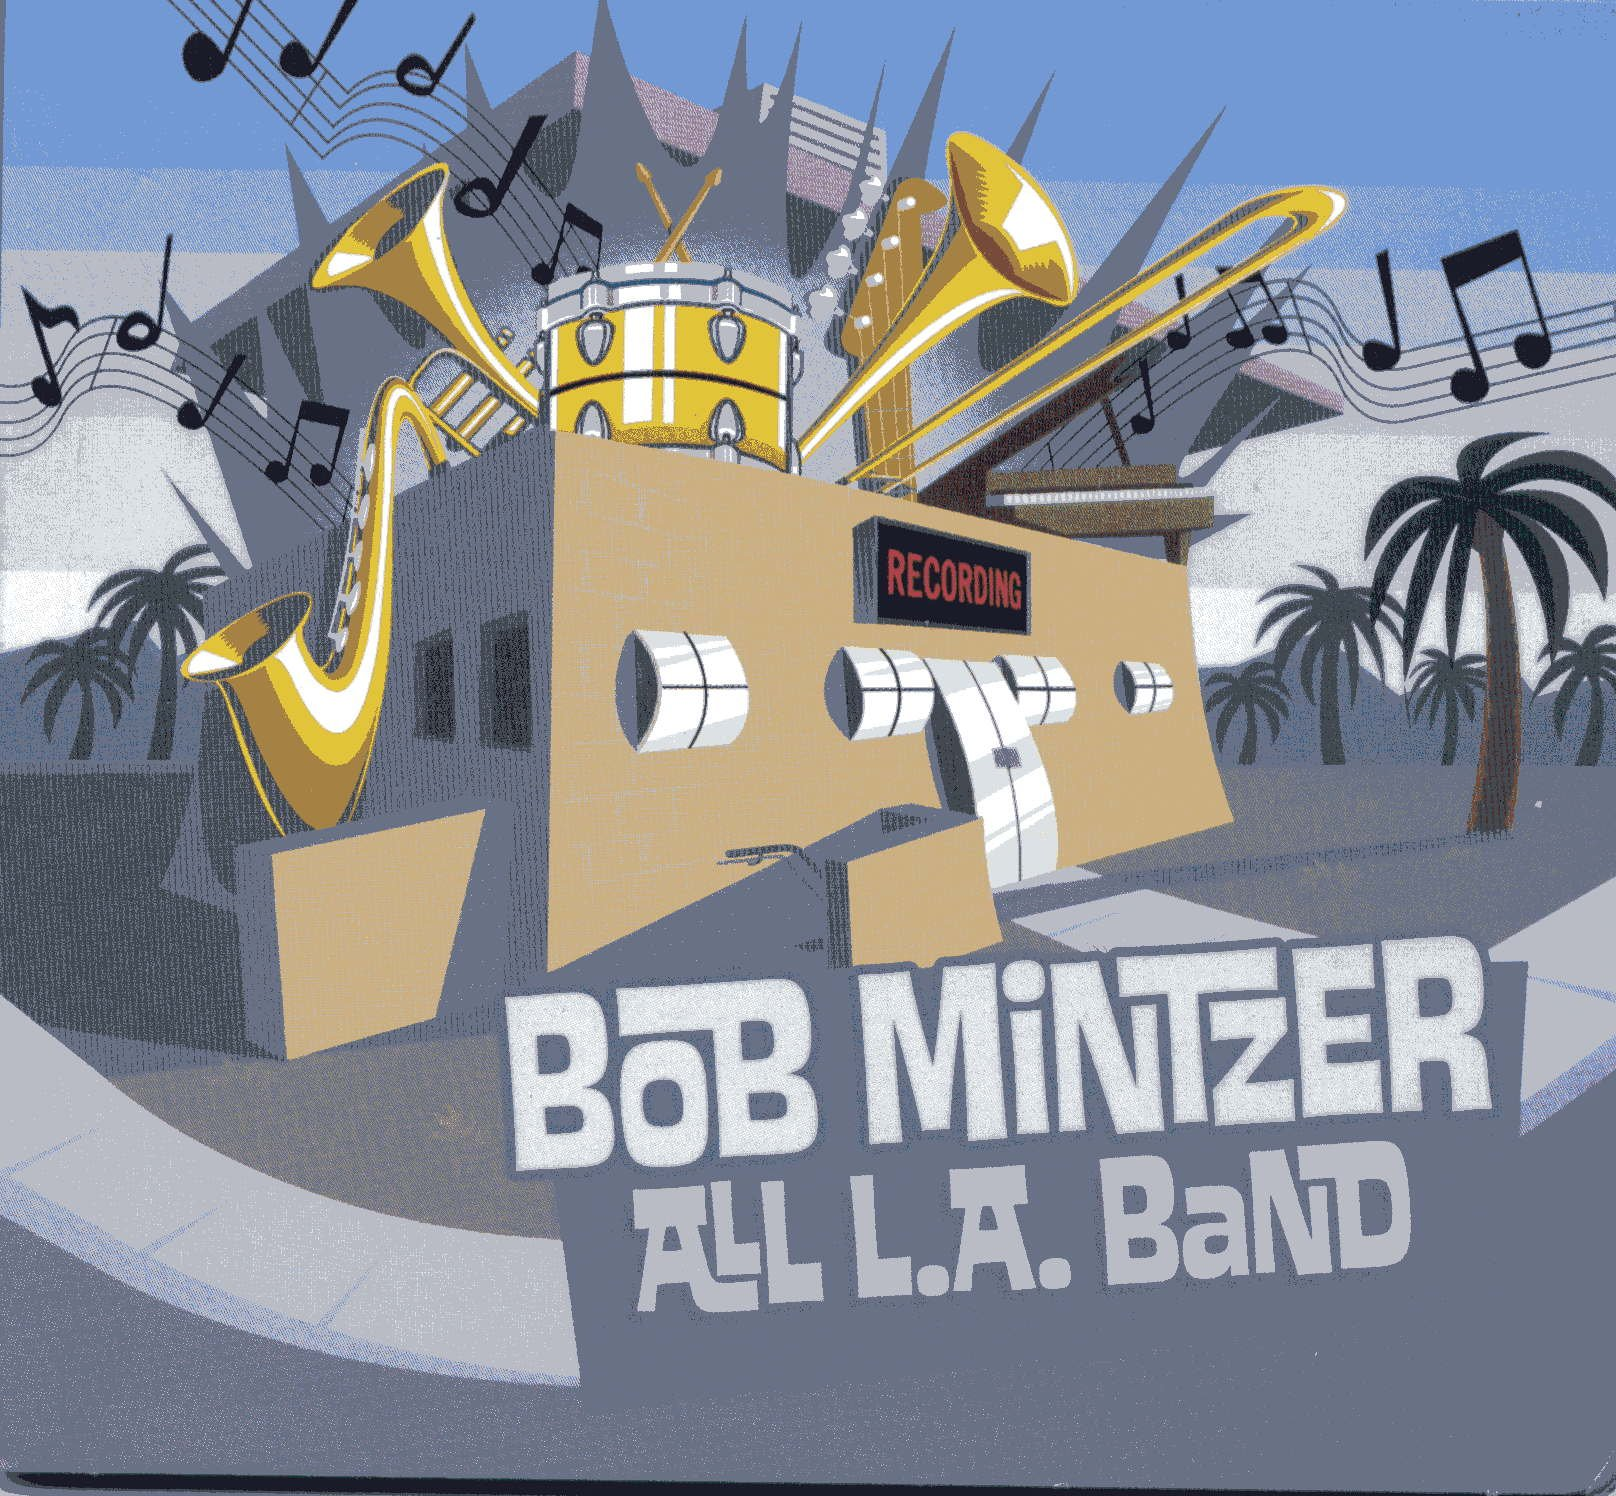 Bob Mintzer</br>All L.A. Band</br>Fuzzy, 2016